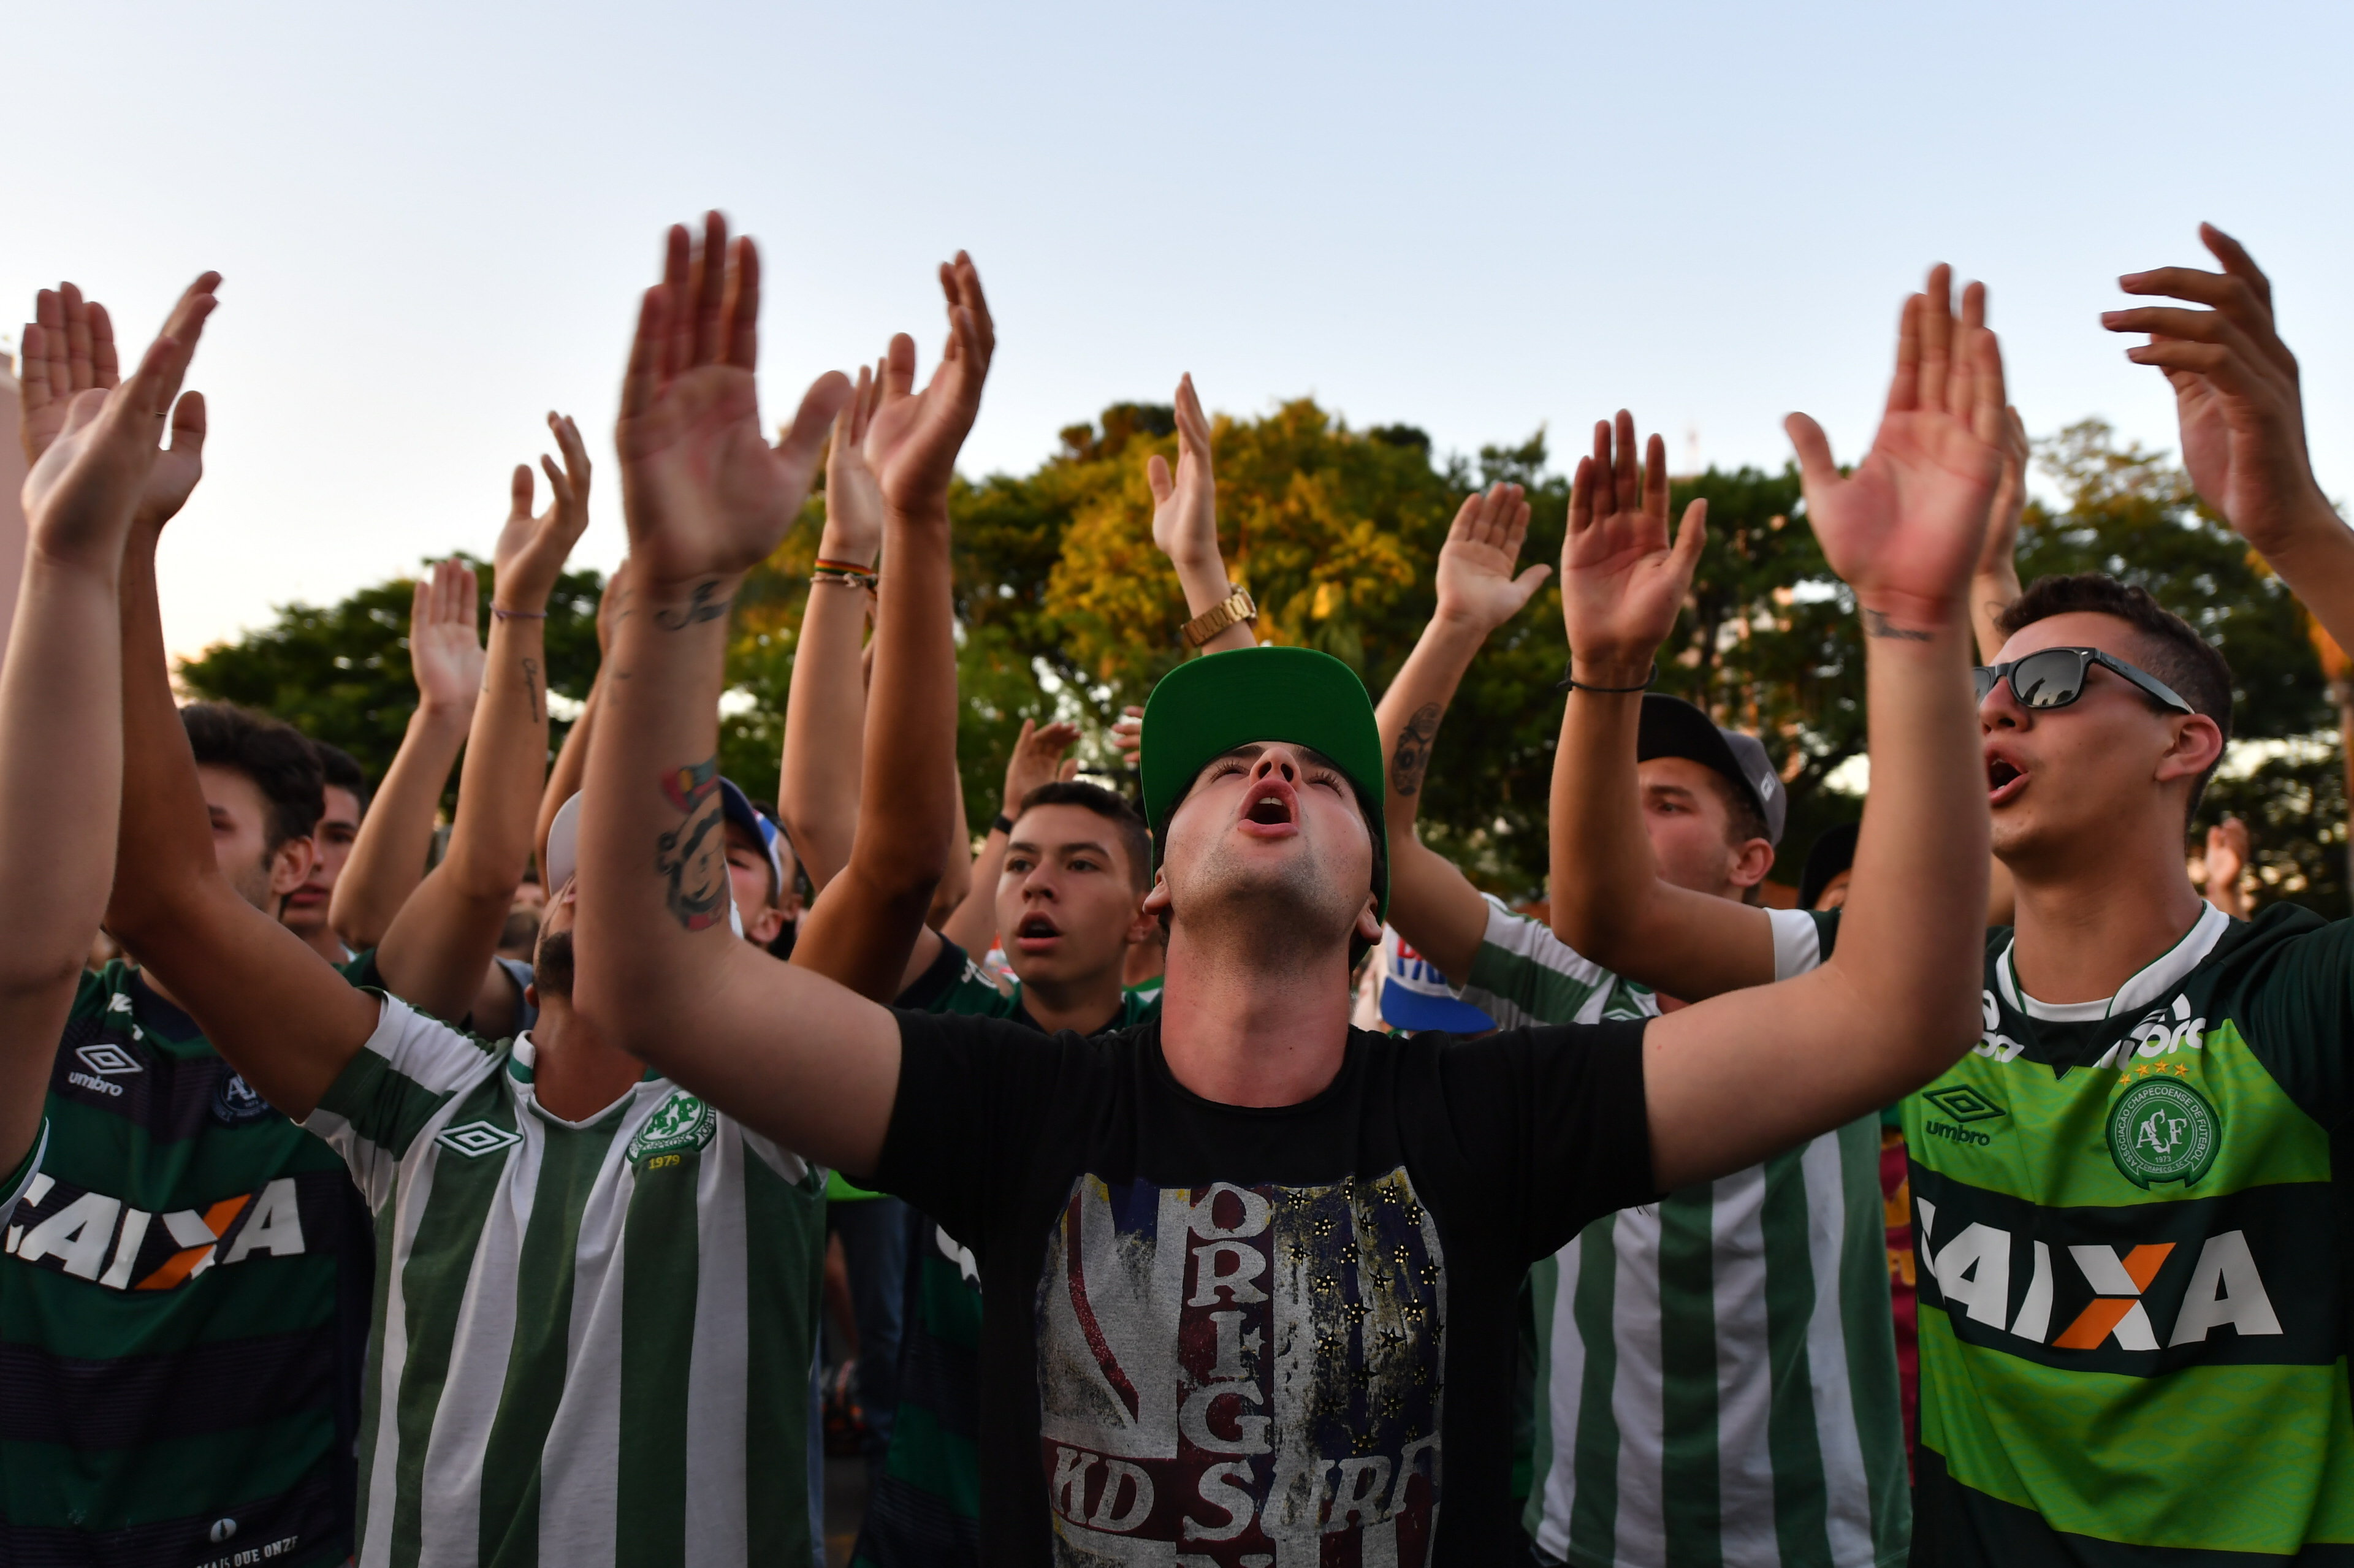 People surround a church during a mass in memoriam of the players of Brazilian team Chapecoense Real killed in a plane crash in the Colombian mountains, in Chapeco, in the southern Brazilian state of Santa Catarina, on November 29, 2016